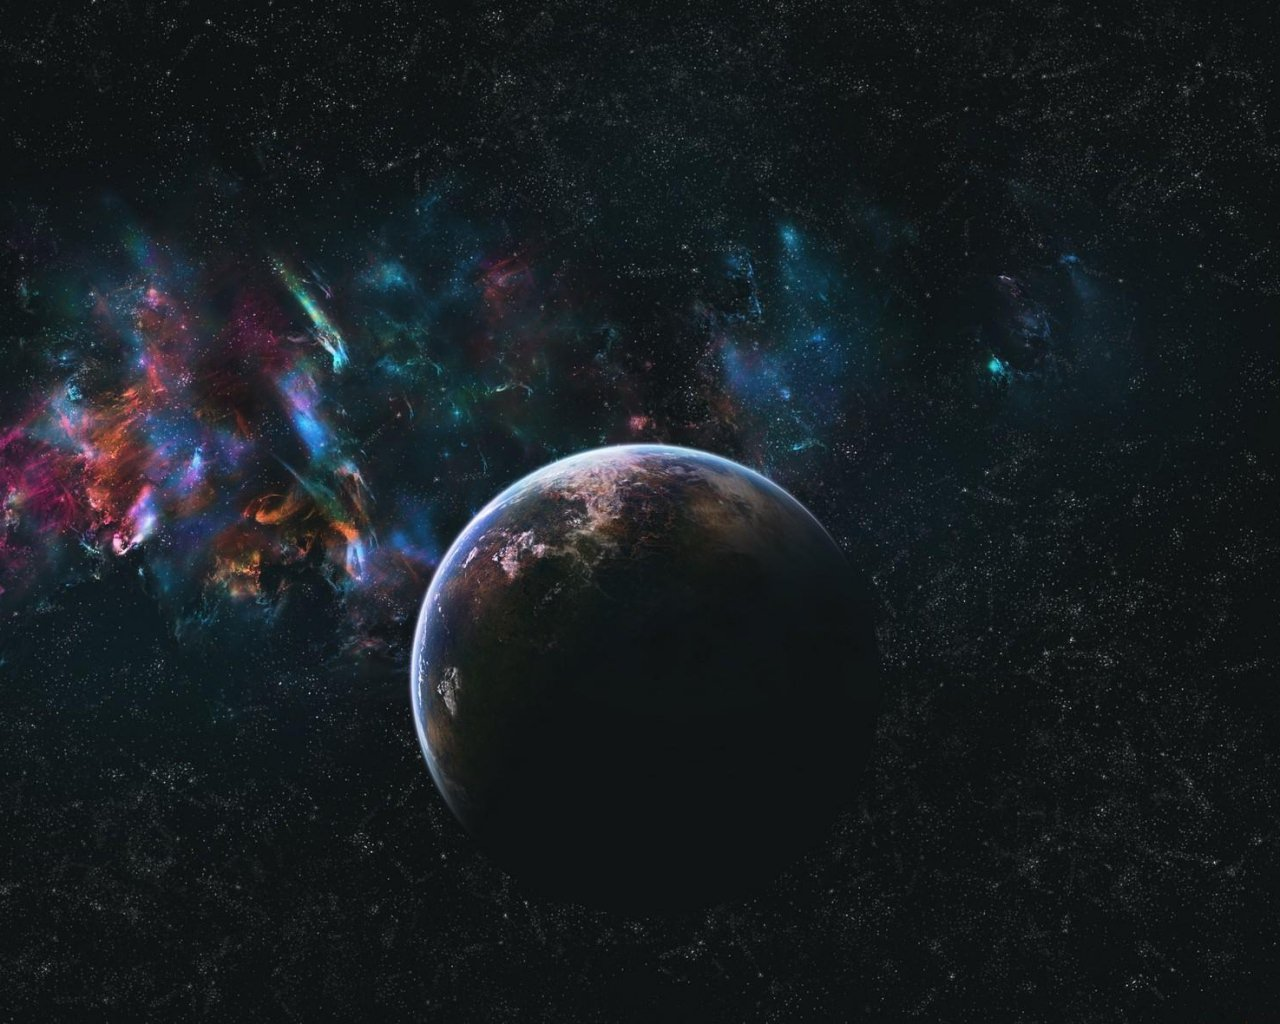 Best 3d Amazing Wallpapers 21 Galaxy Backgrounds Space Wallpapers Images Pictures